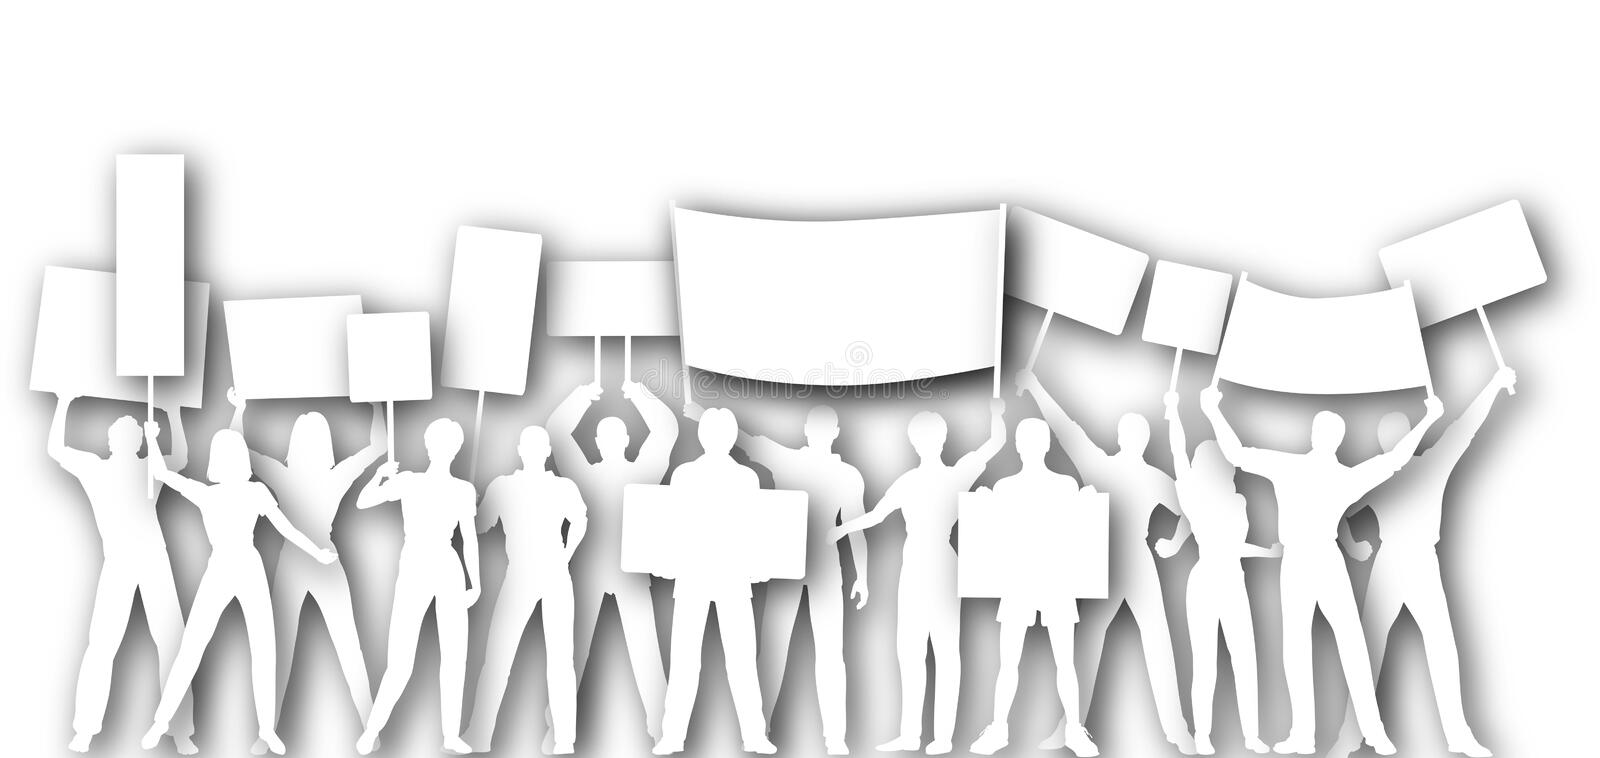 Placard Holders Royalty Free Stock Images